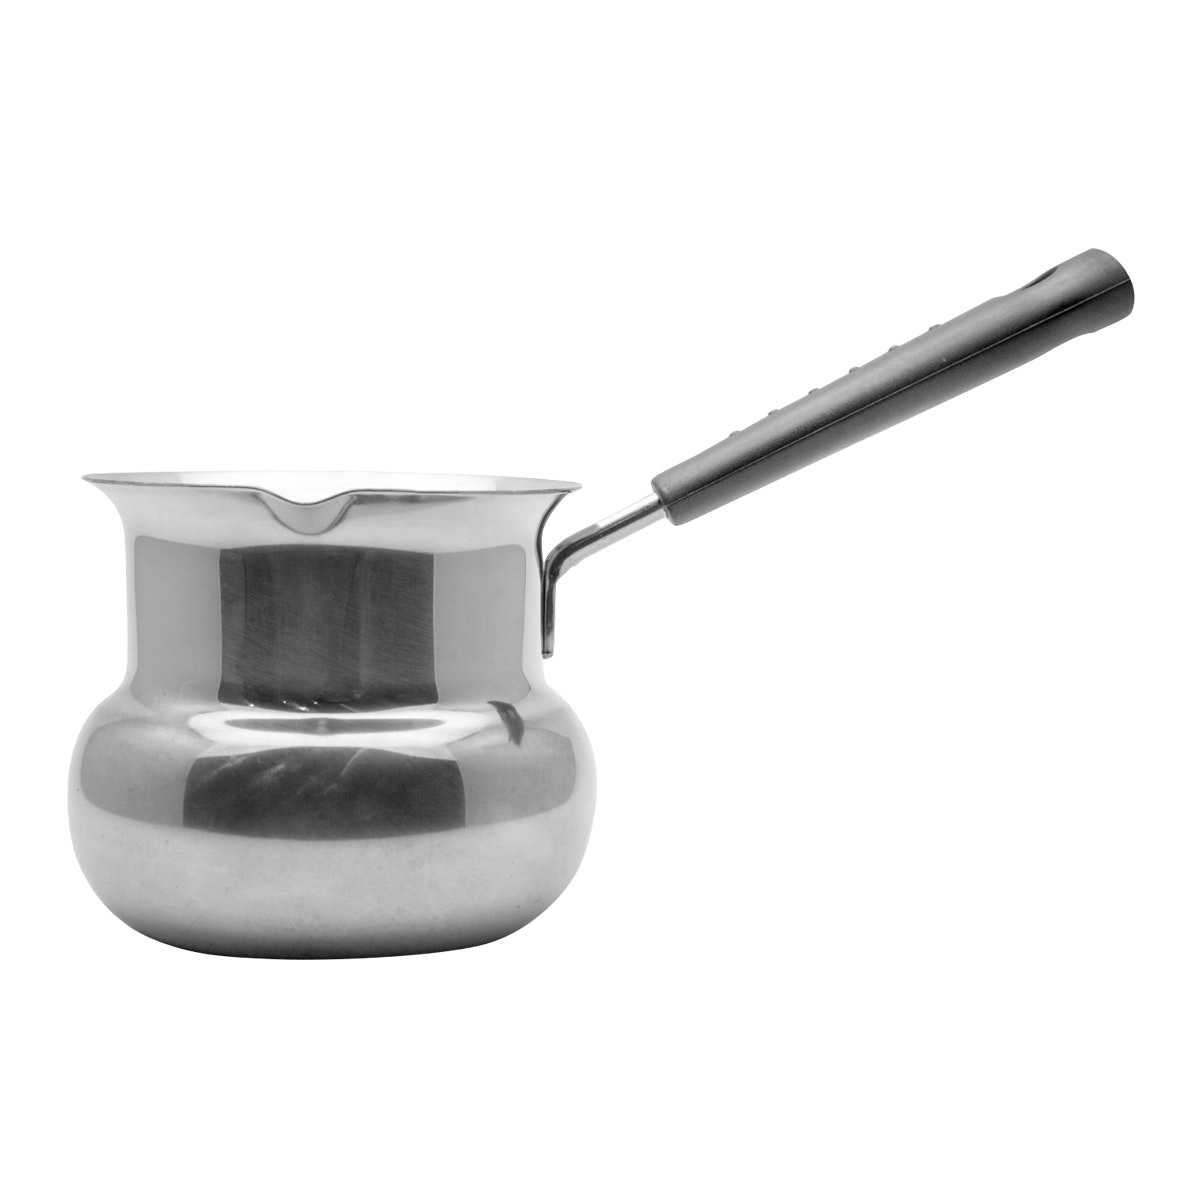 HAN Ibric/Ibrik/Turkish Coffee Maker/Panci Mini Stainless Handle Bakelite Tebal Model Drum IBRD 720 Ml